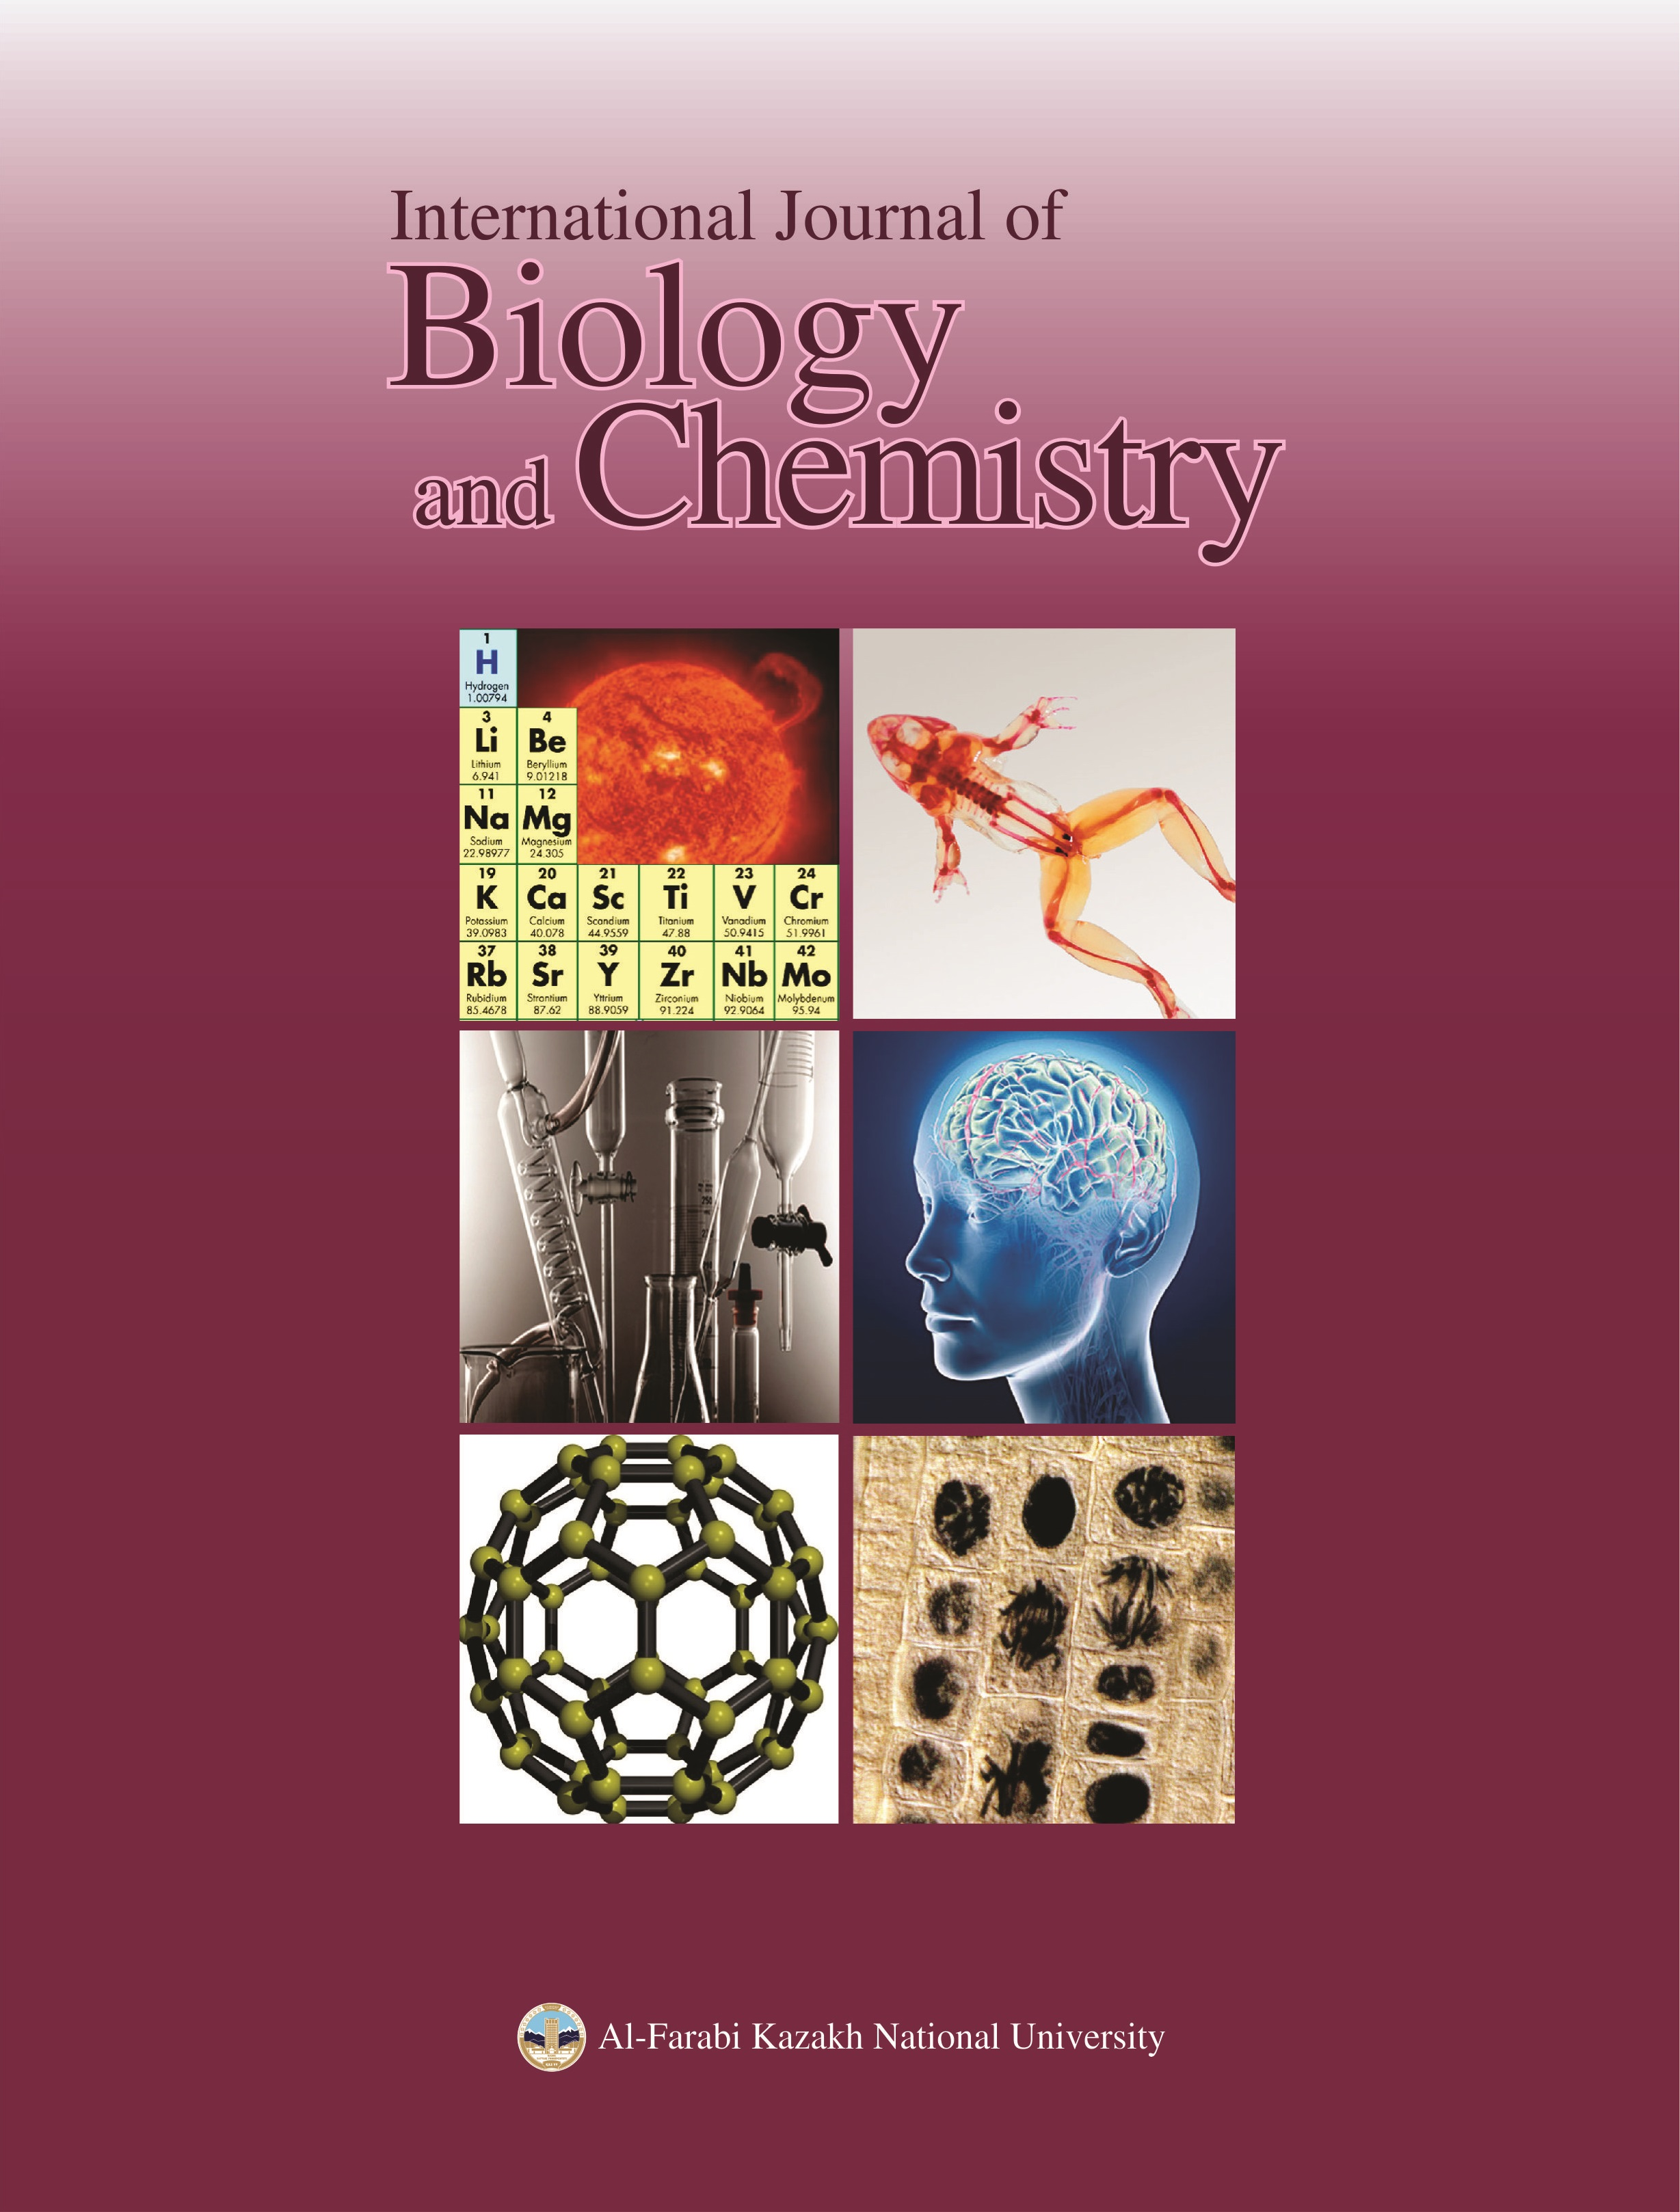 View Vol. 7 No. 2 (2014): International Journal of Biology and Chemistry